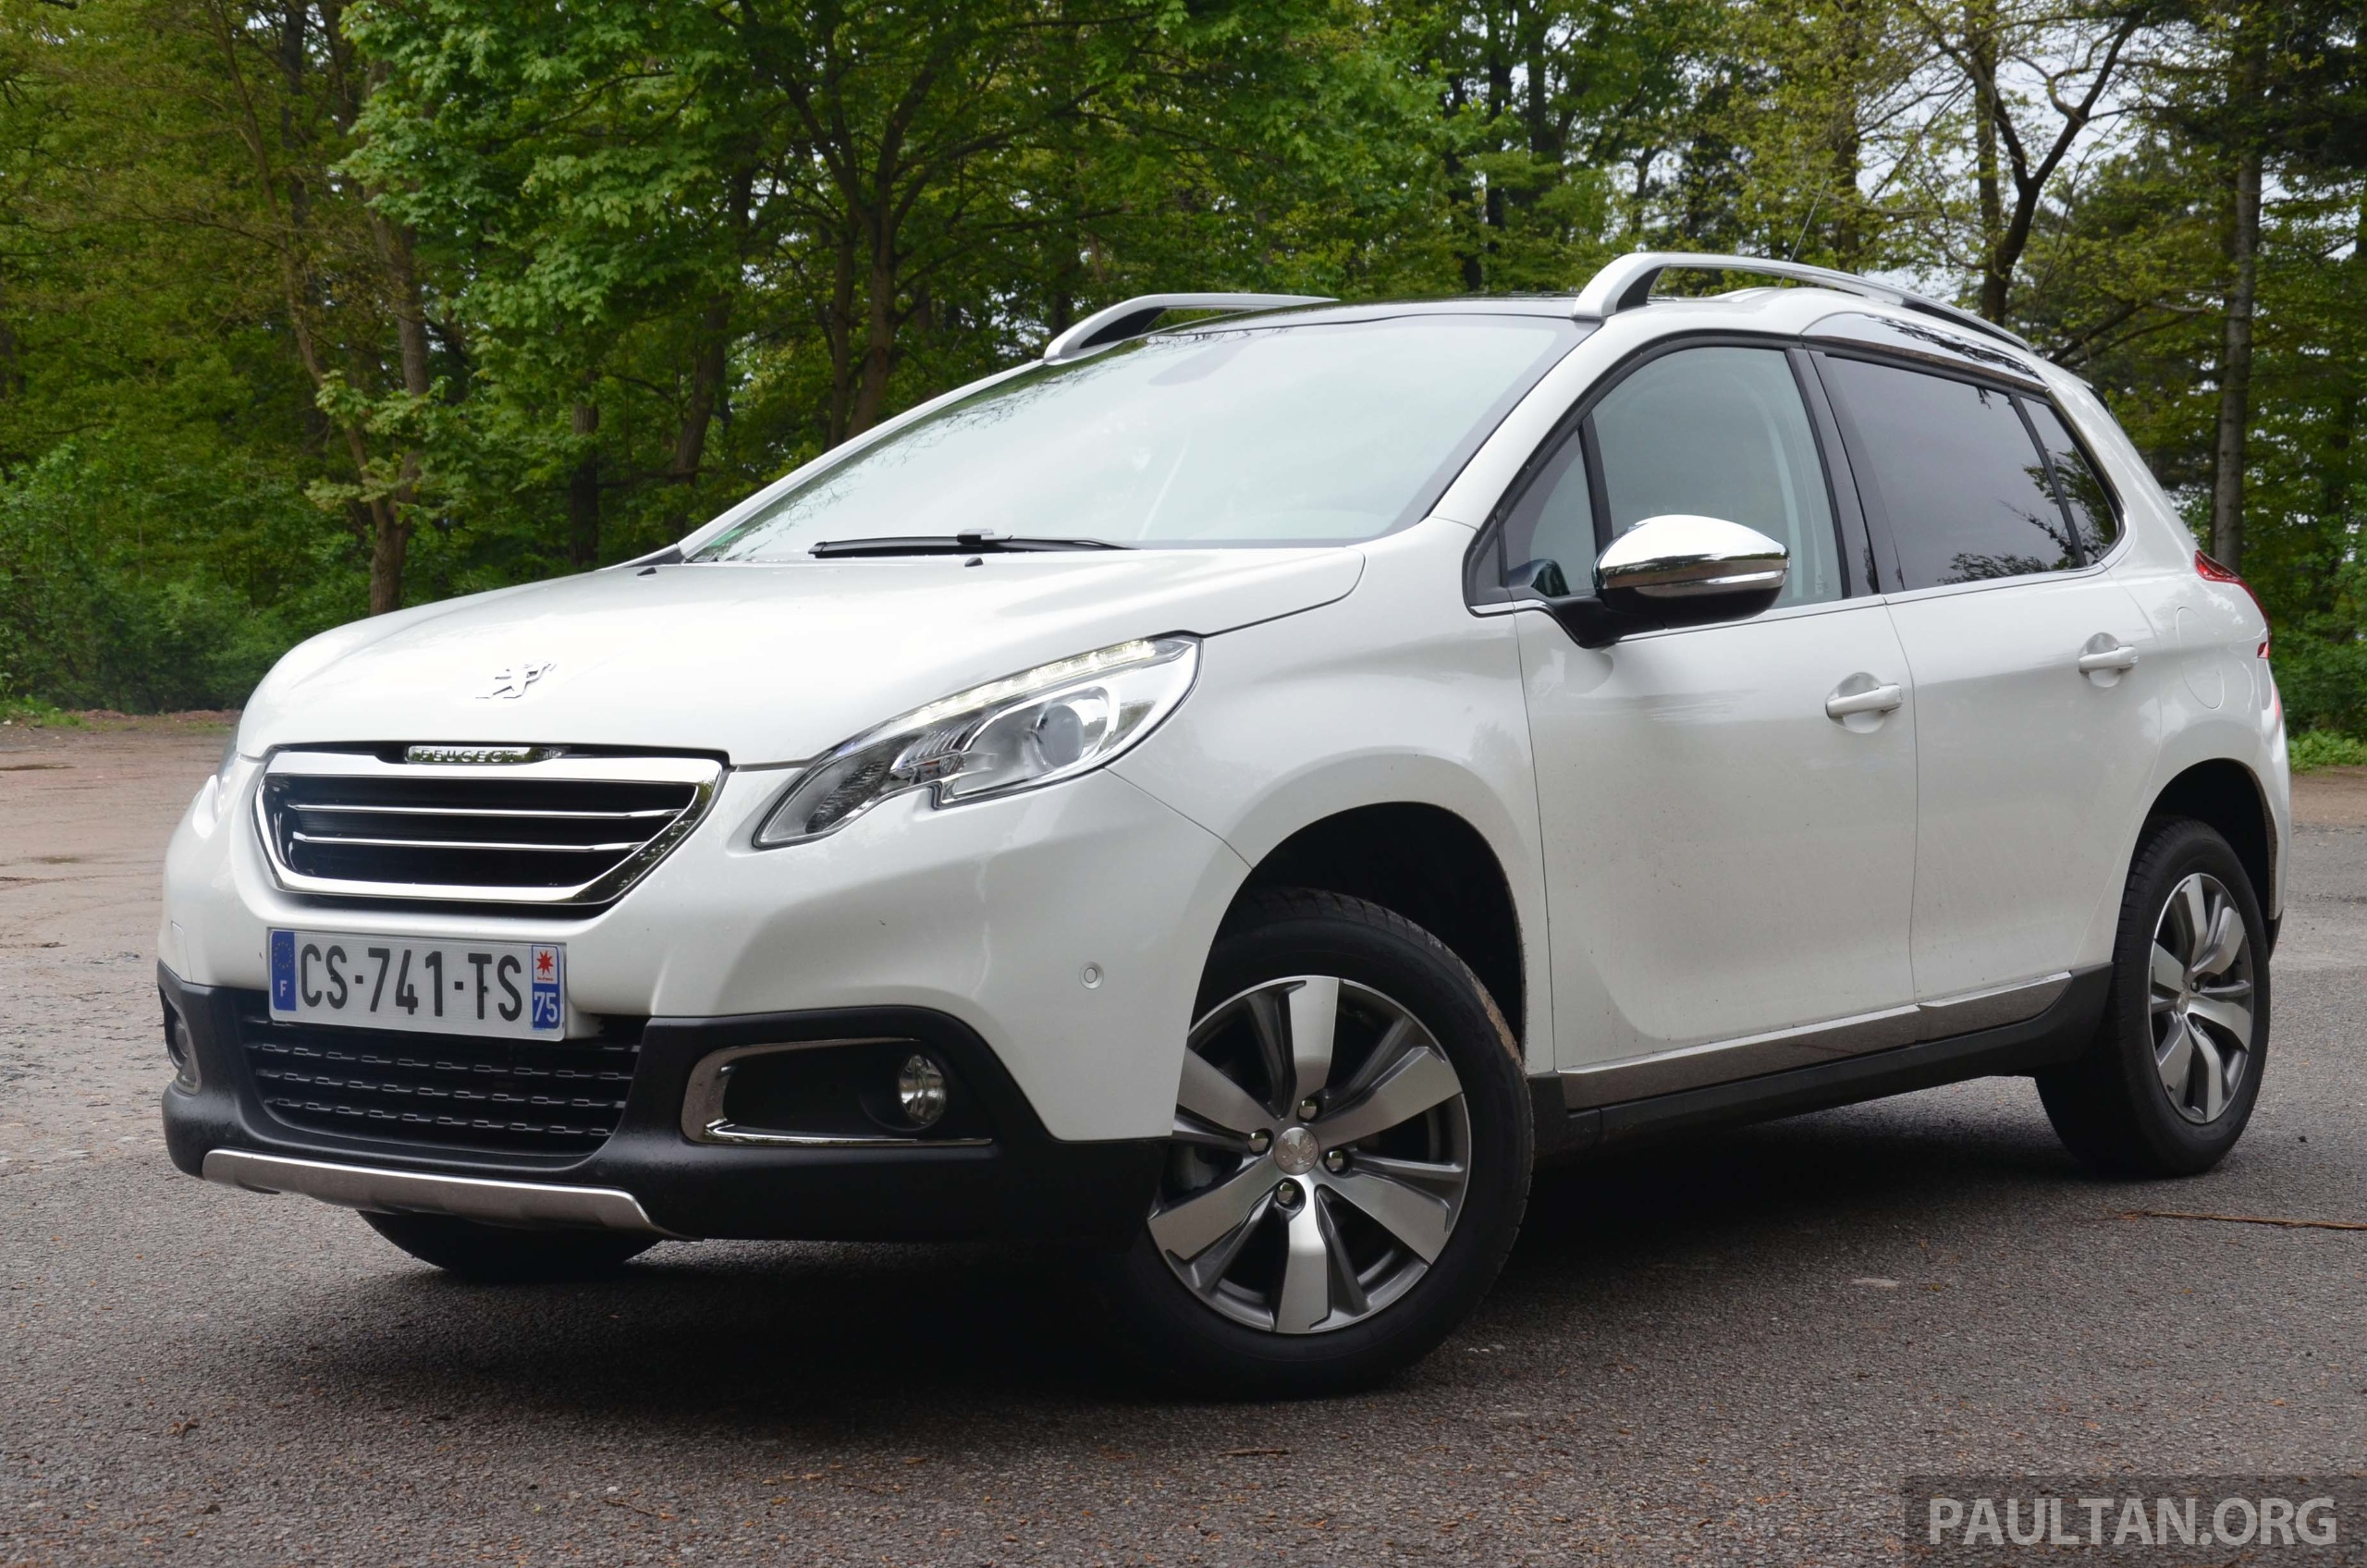 Driven Peugeot 2008 Crossover In Alsace France Image 220441